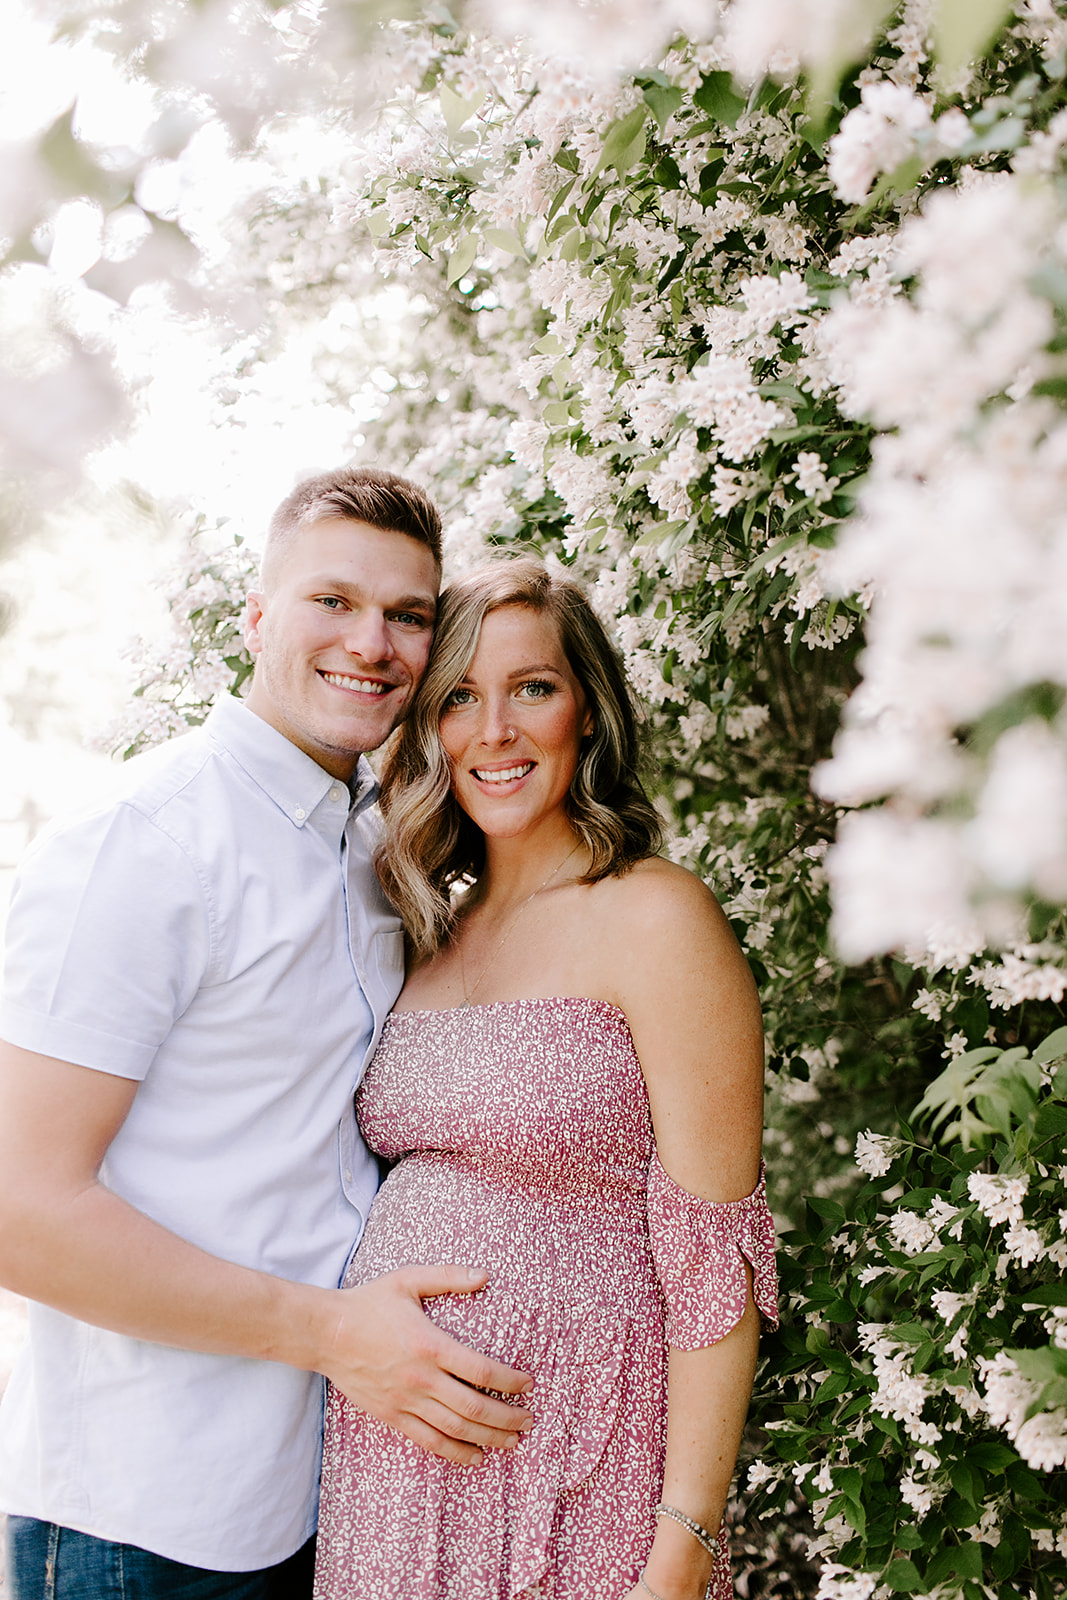 Casie_and_Sean_Maternity_session_at_cool_creek_park_in_Carmel_Indiana_by_Emily_Wehner-98.jpg